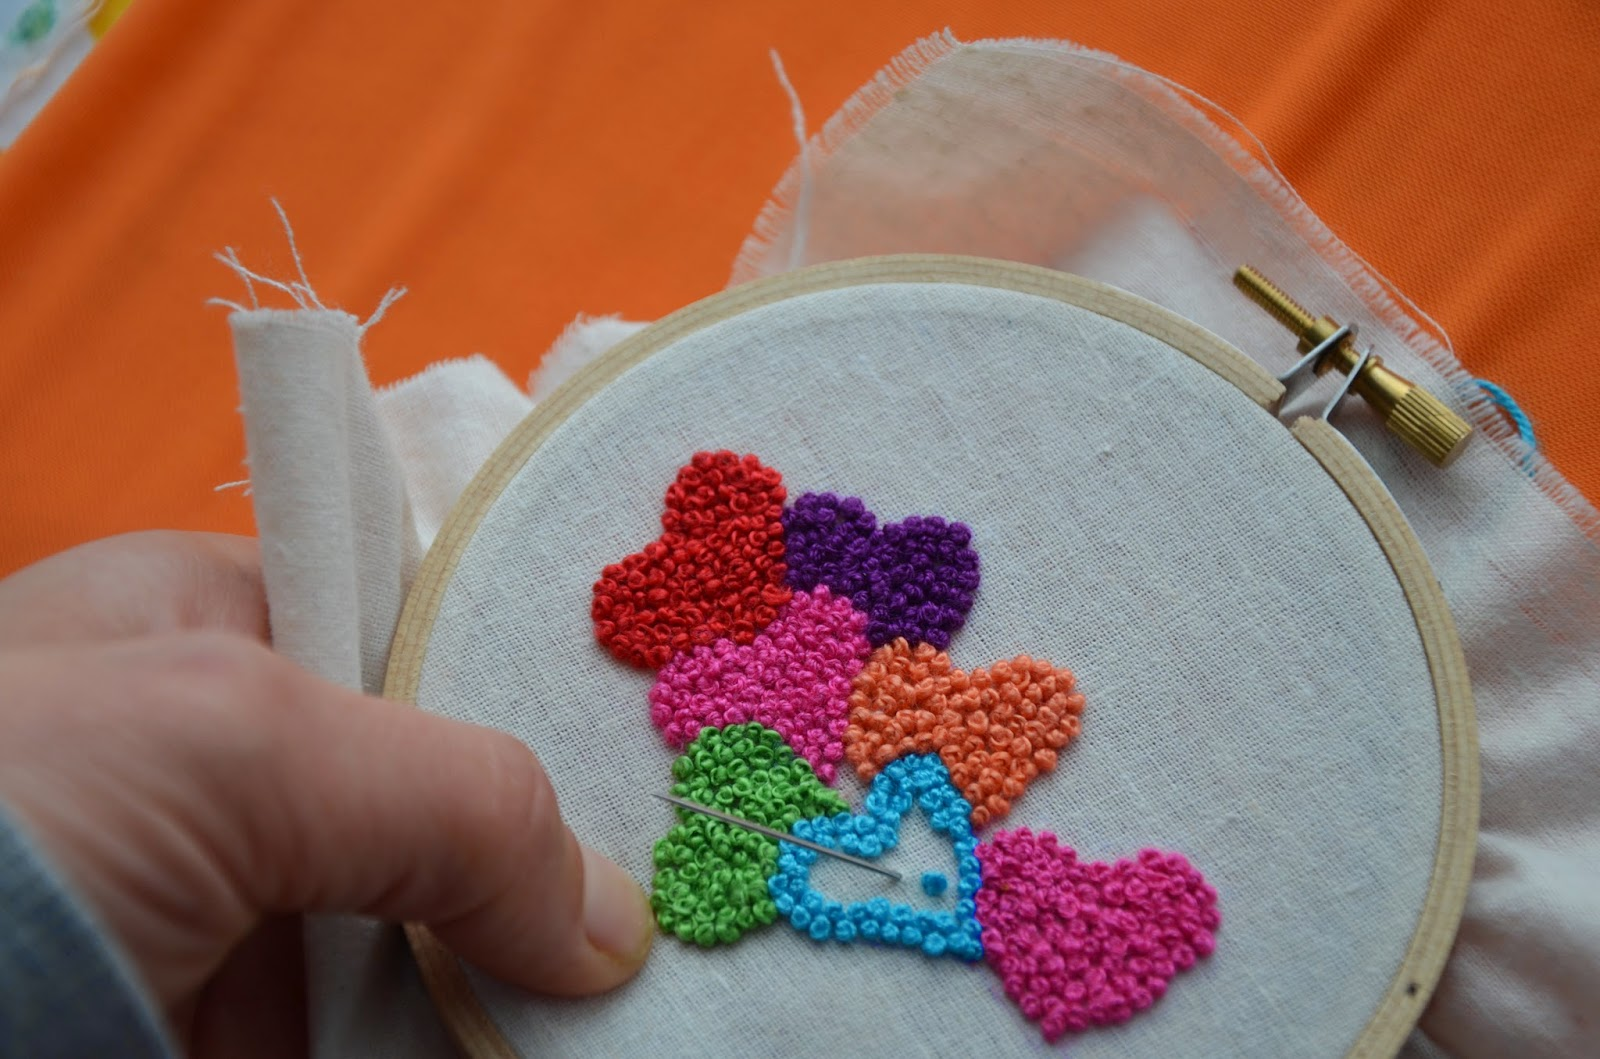 Keep repeating until you form enough amount of French knots for your project.